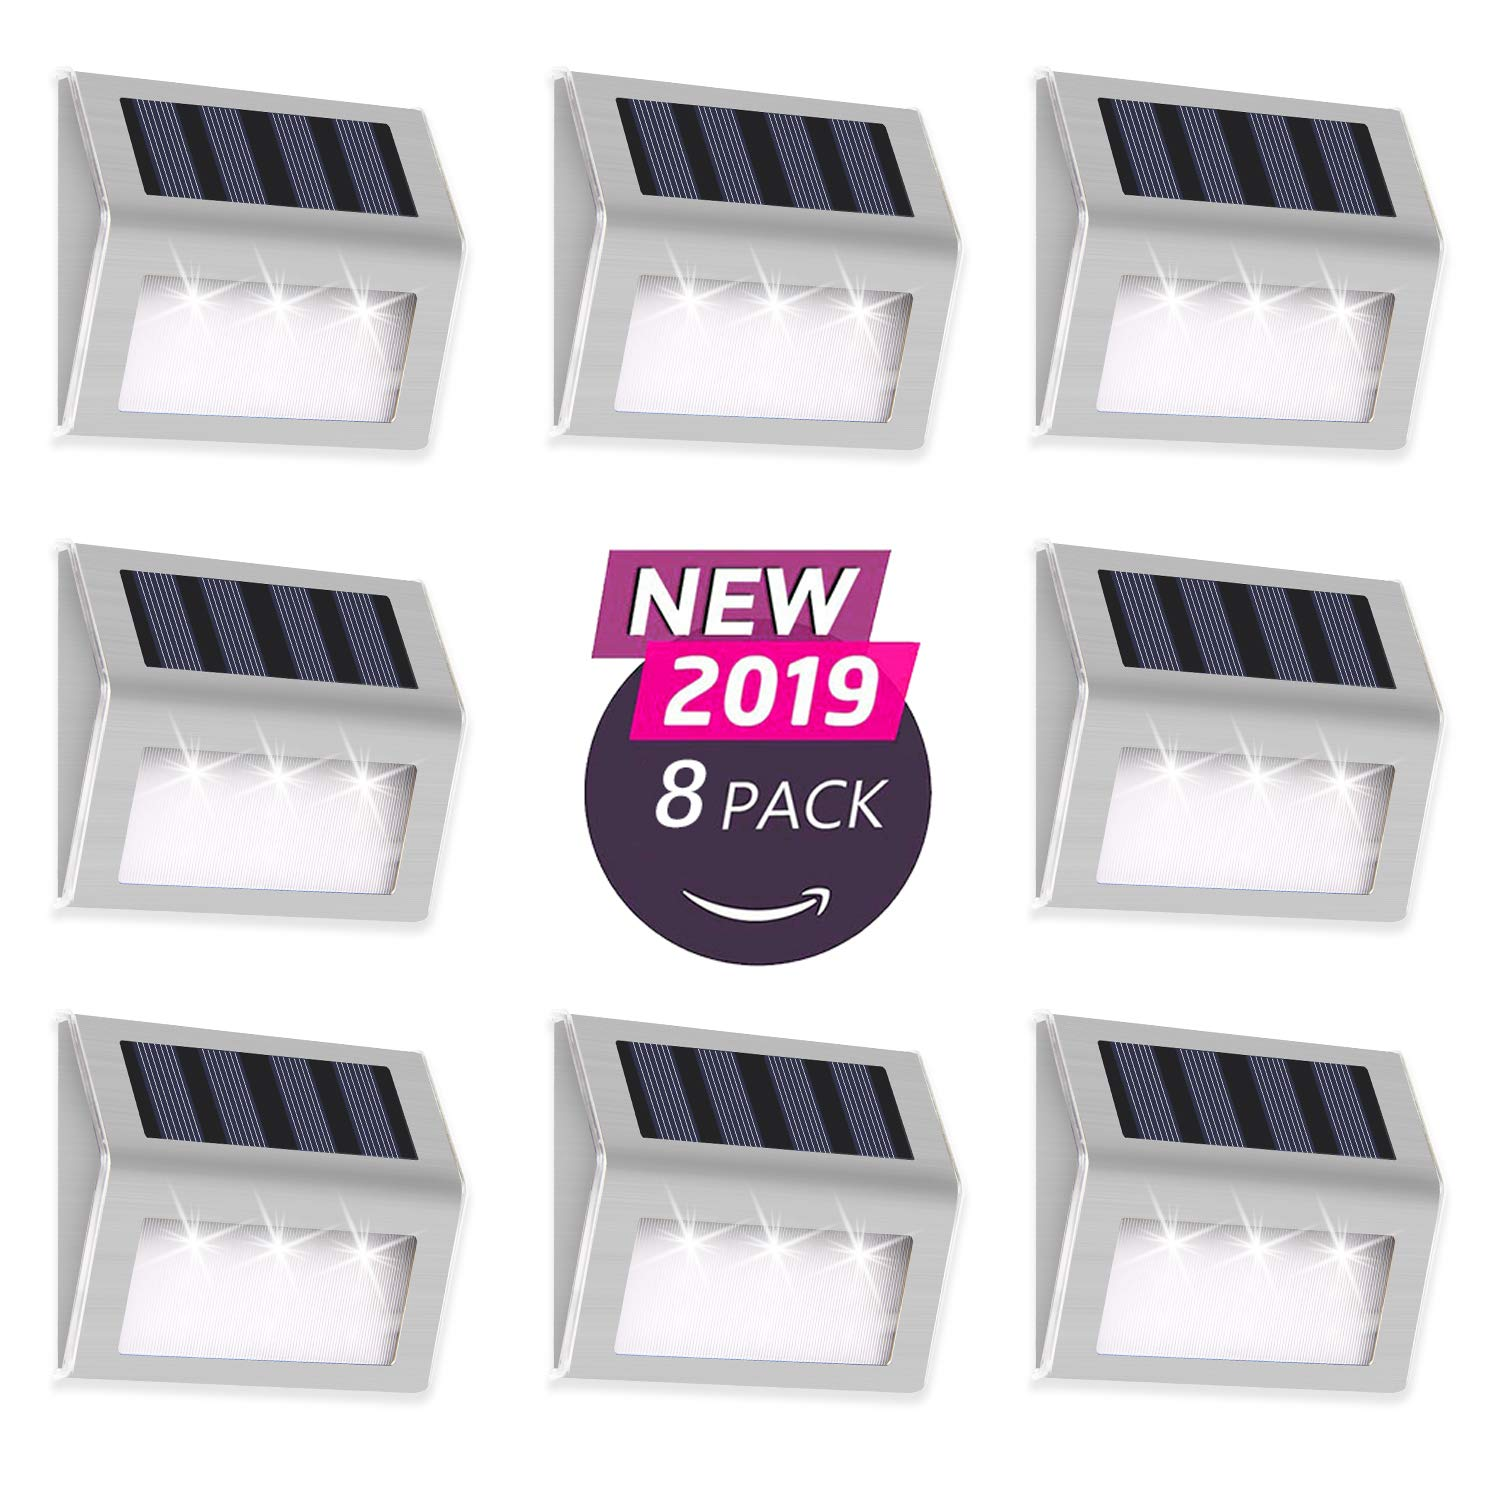 Otdair Solar Deck Lights, 3 LED Solar Step Lights Outdoor Auto On/Off Stainless Steel Solar Stair Lights Waterproof Wireless Solar Powered Lights for Fence Patio Garden Pathway - White Light 8 Pack by Otdair